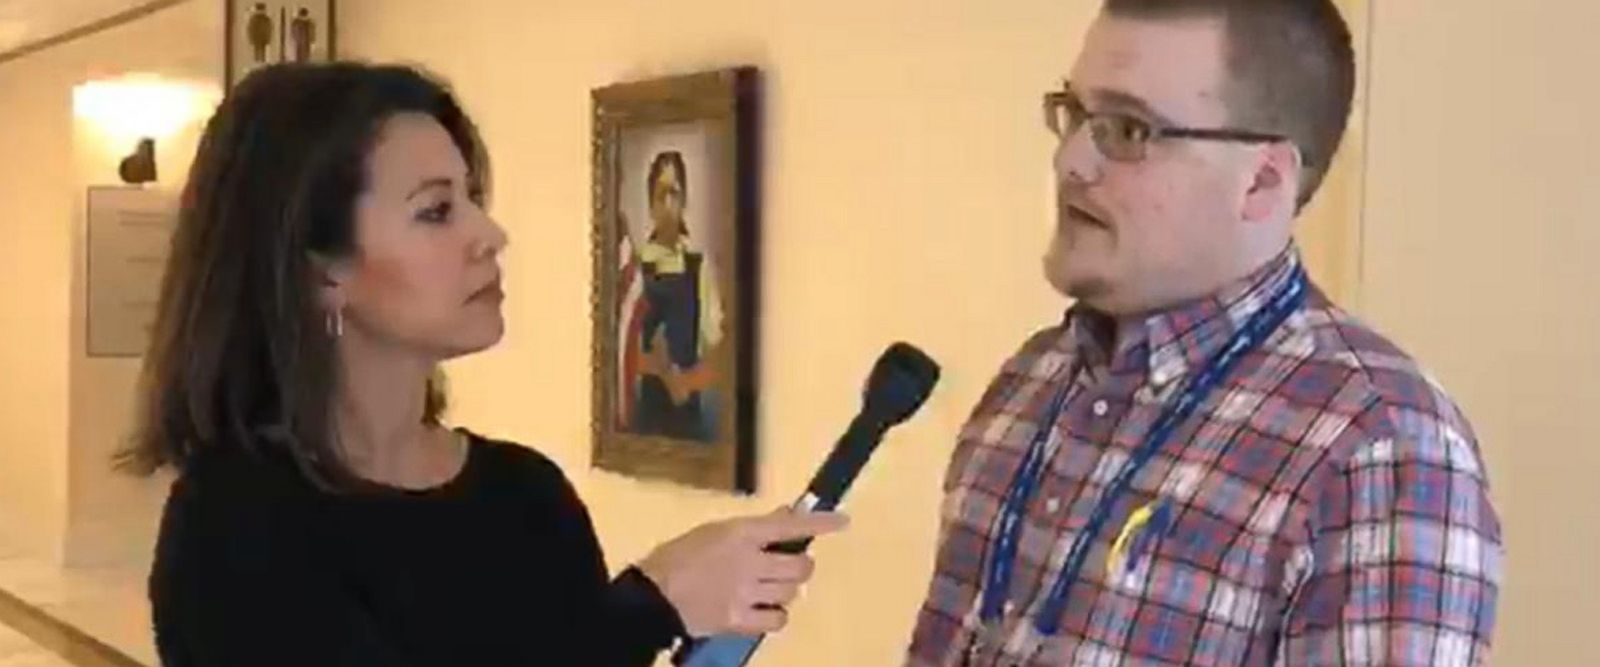 VIDEO: Day 1 at CPAC: attendees weigh in